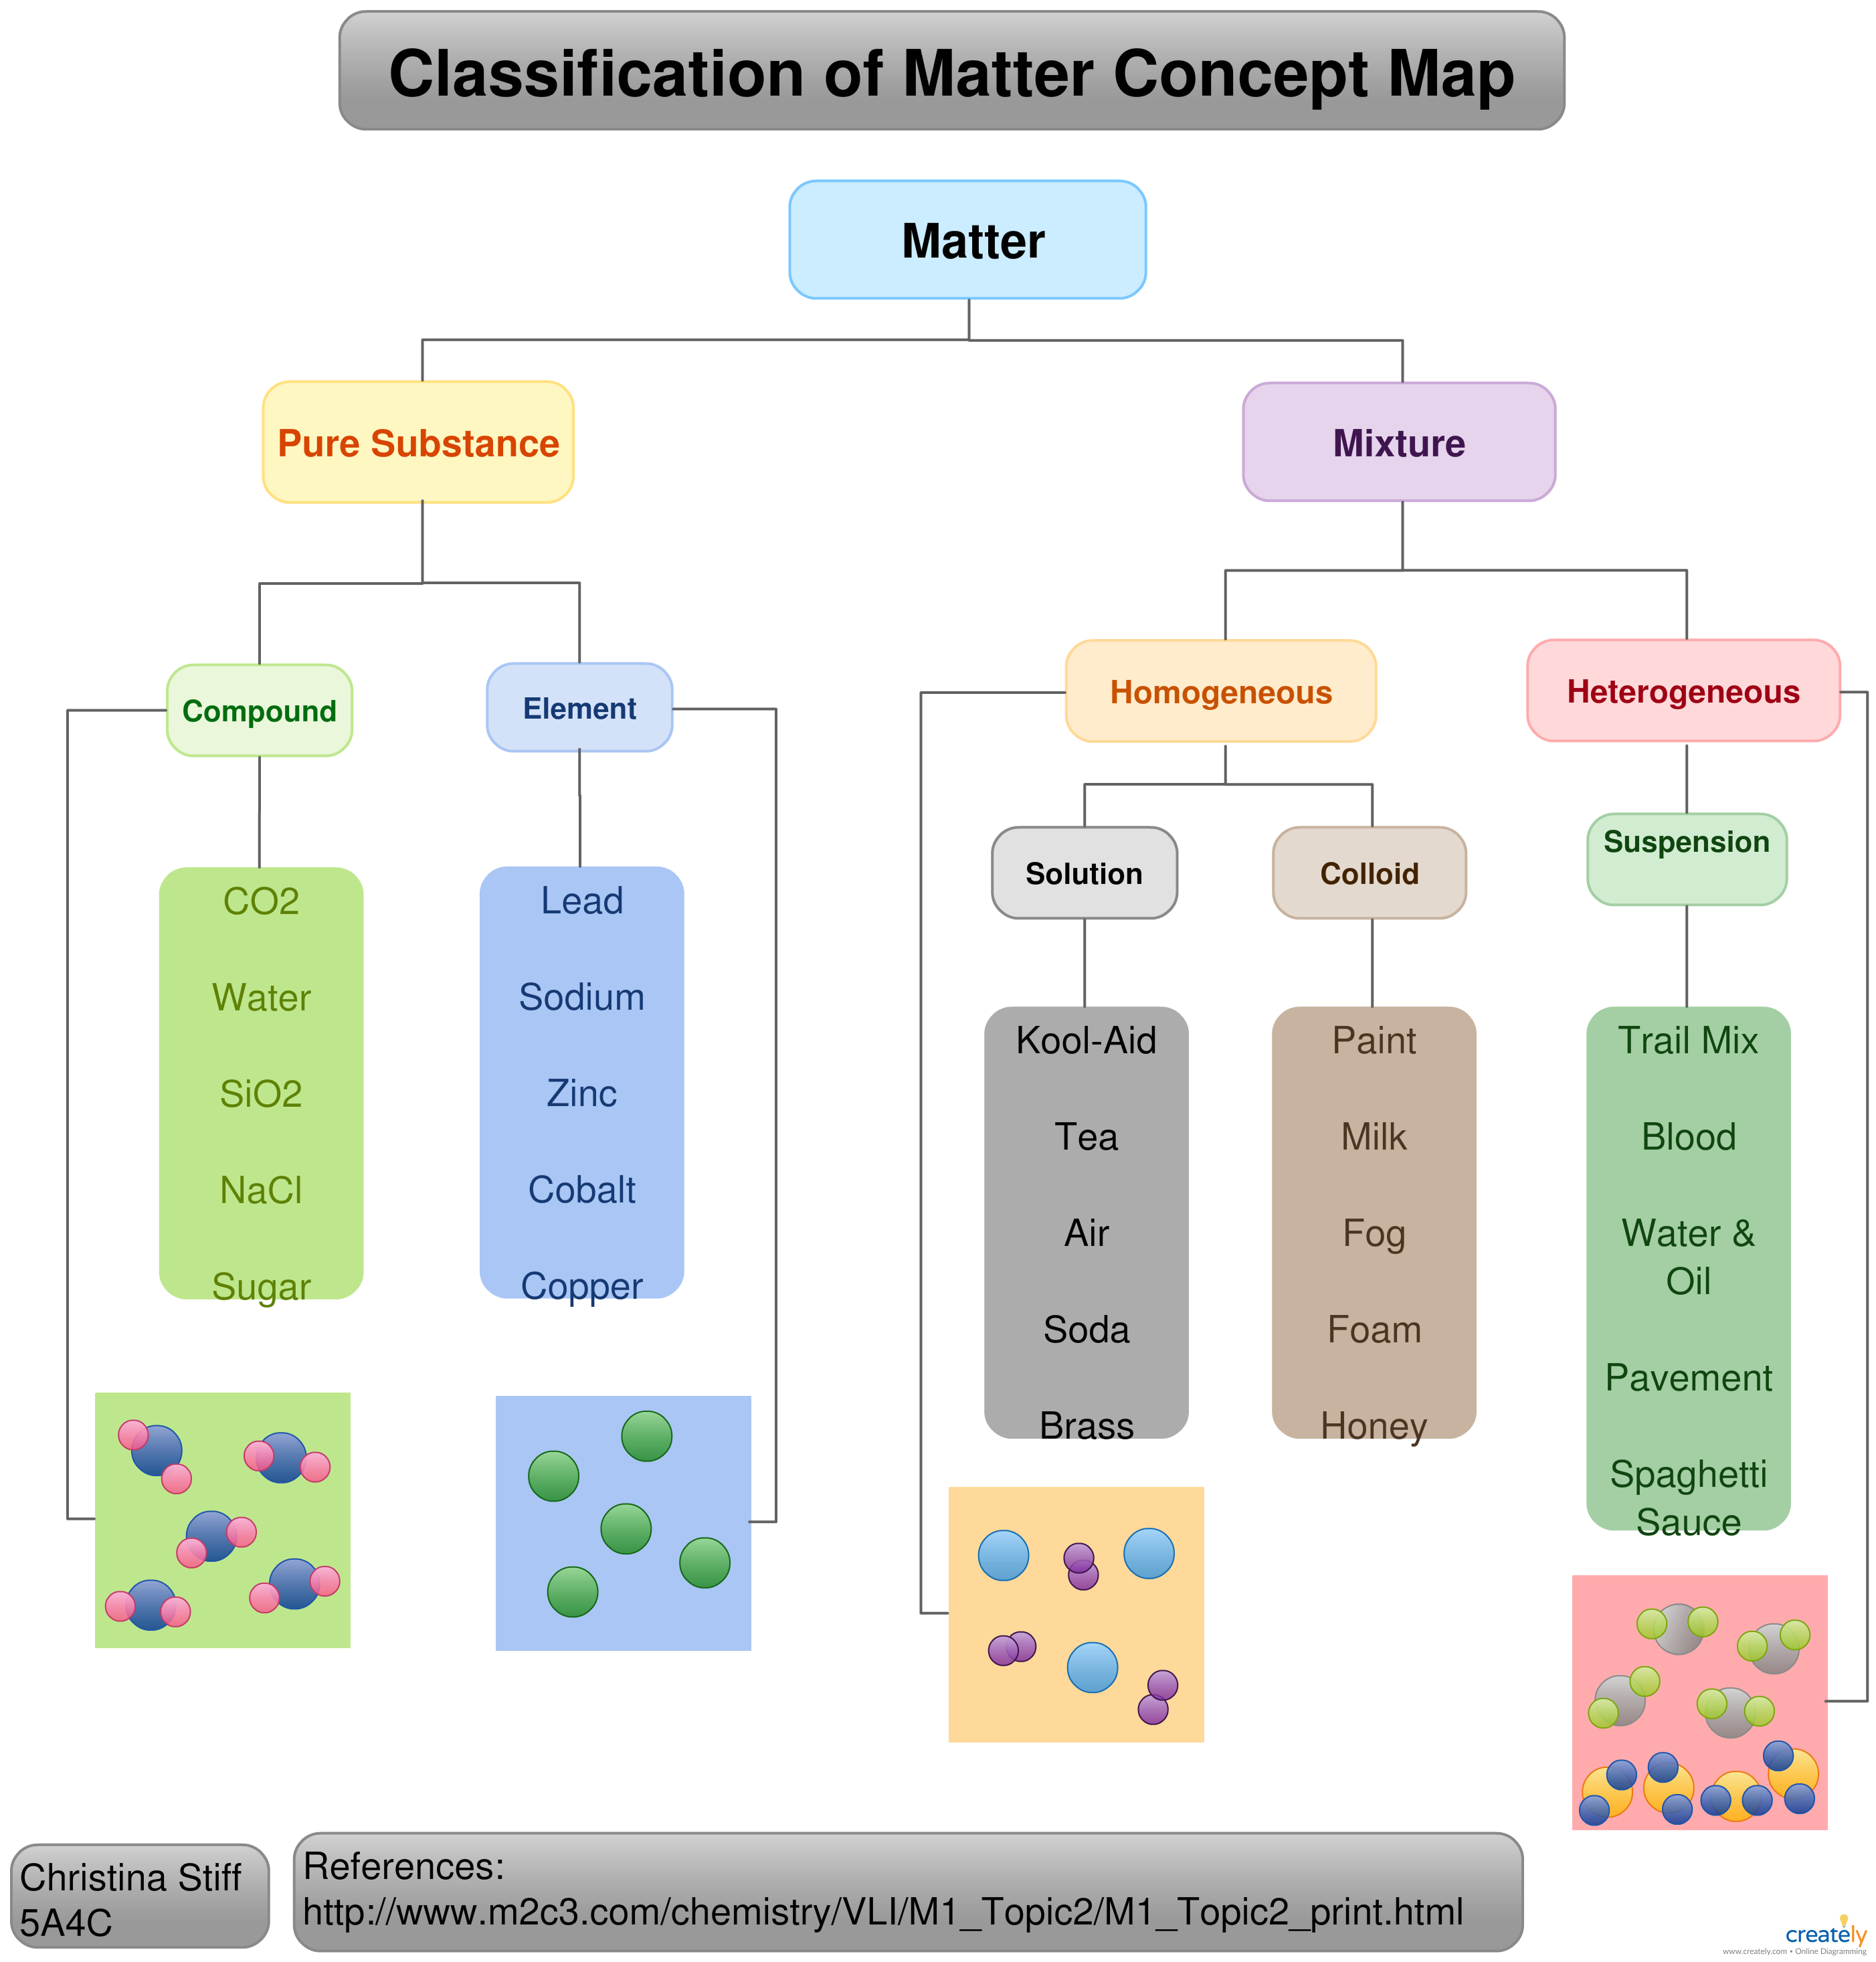 small resolution of Classification of Matter Concept Map   Concept map